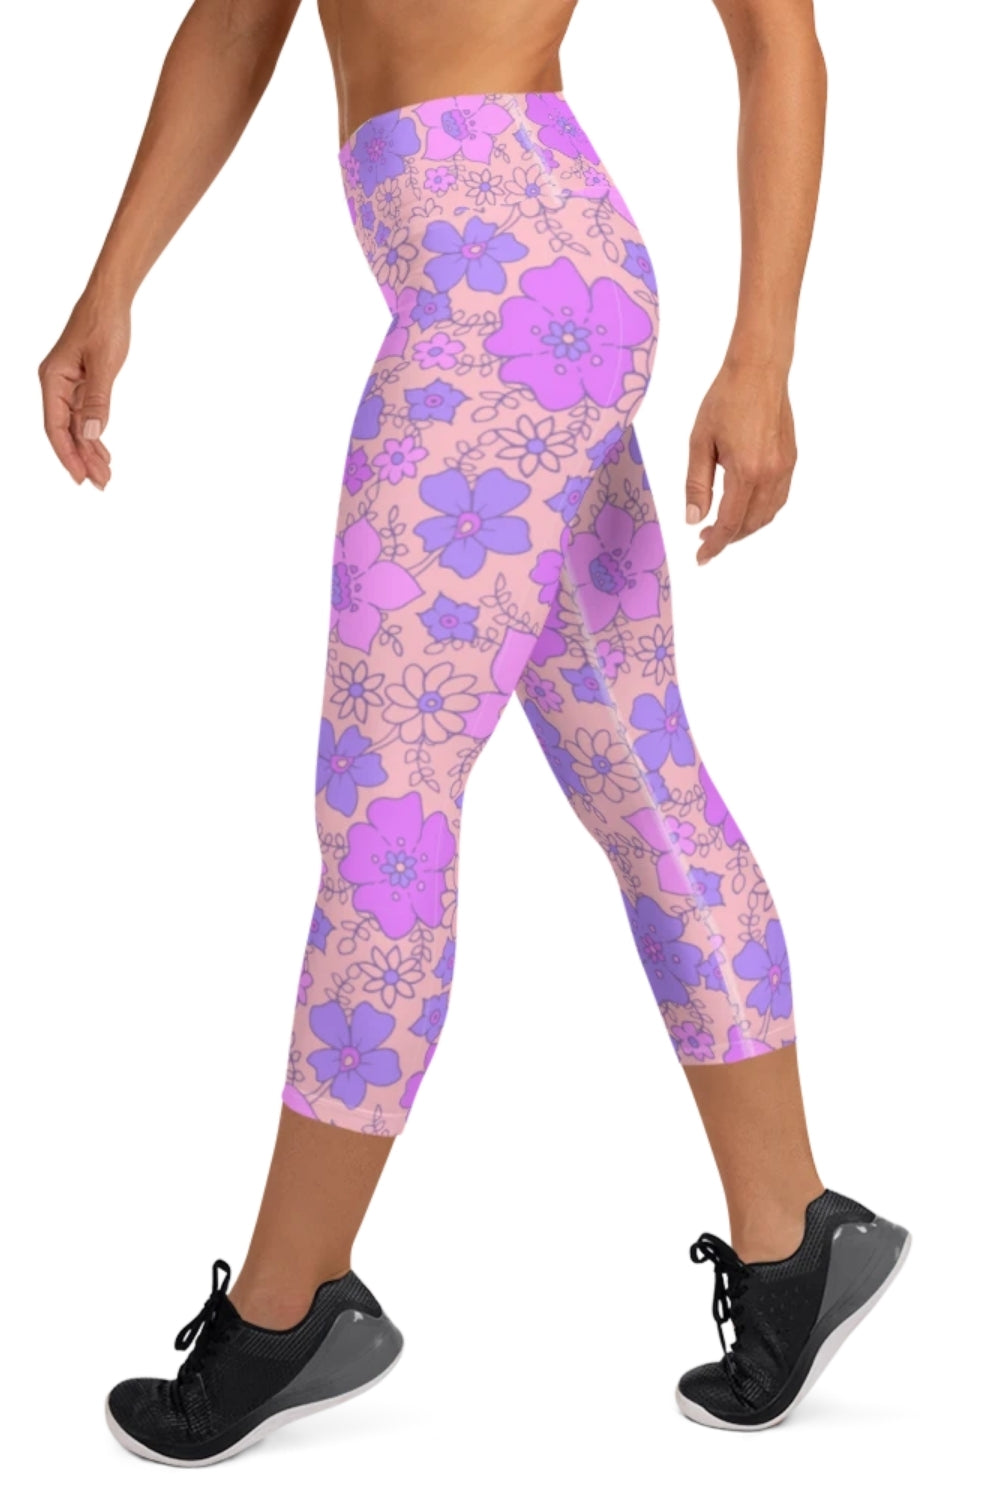 Honolulu 3/4 Yoga Leggings